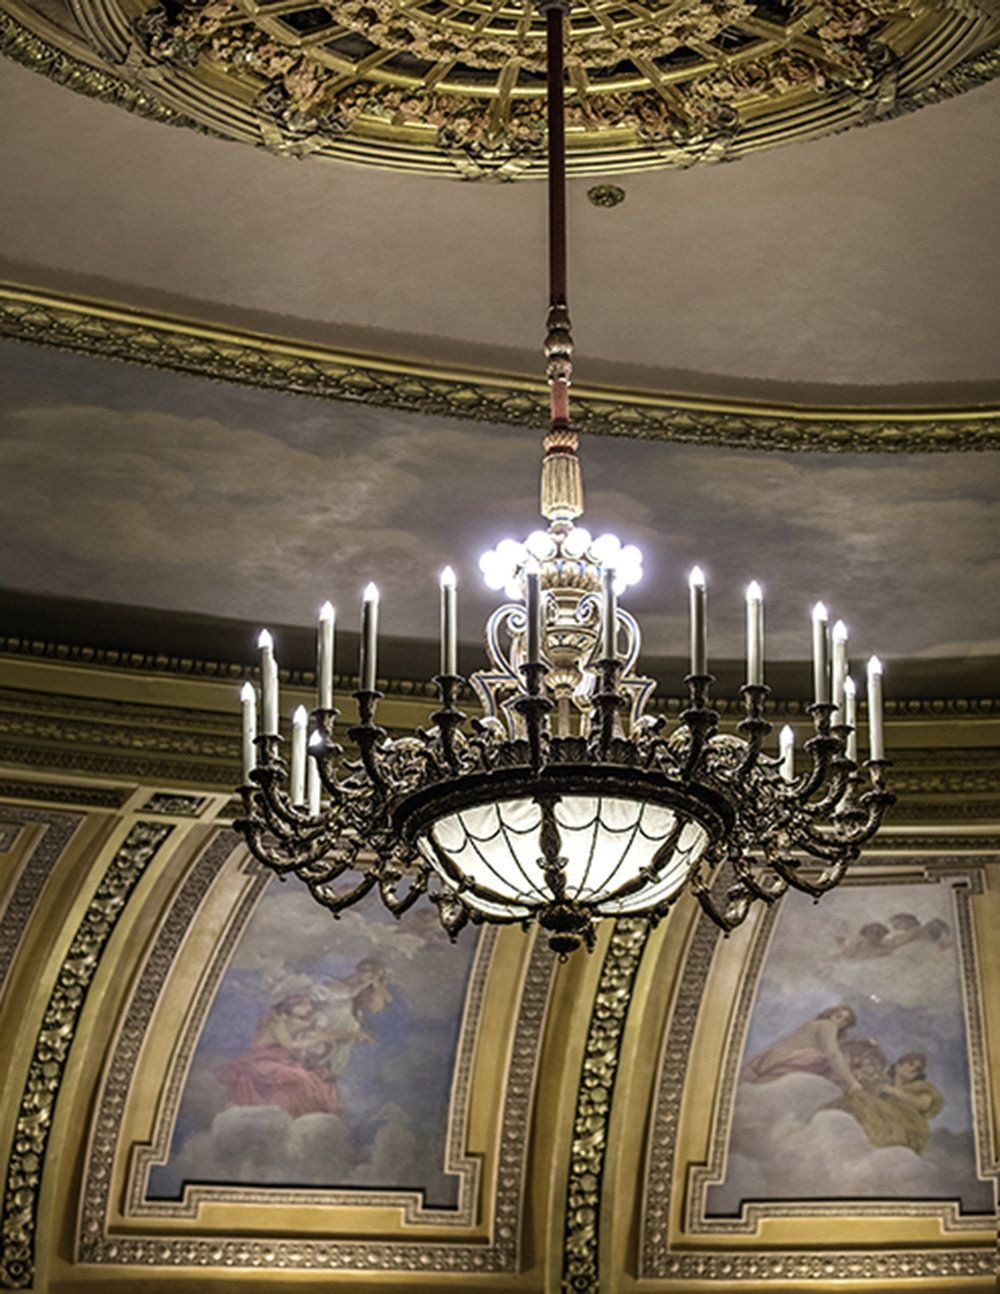 Al ringling theatre historic preservation pinterest the restored auditorium chandelier the historic lighting fixtures were restored by historic surfaces milwaukee wi arubaitofo Image collections